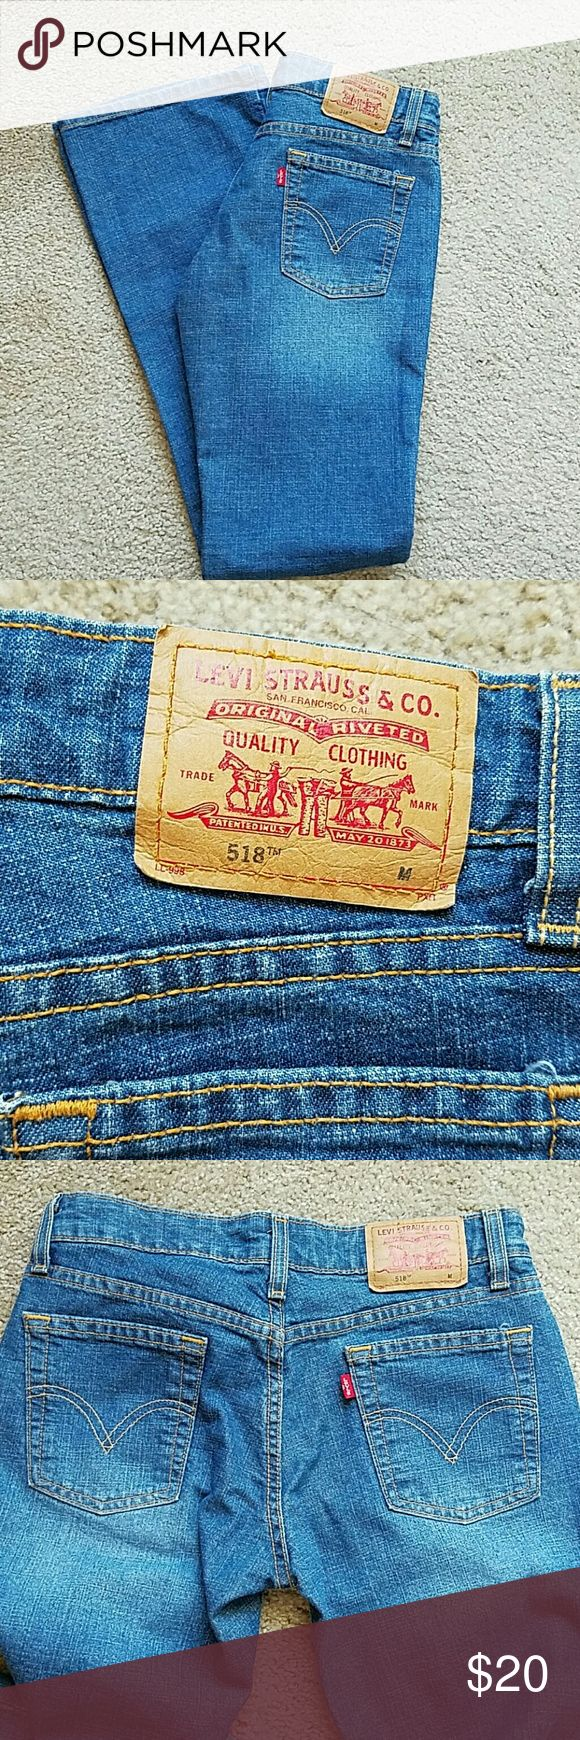 Levis superlow stretch boot cut jean New without tags boot cut Levis jeans. These are supposed  to have a faded worn in look. Levis 518, size 3 in juniors Jeans Boot Cut